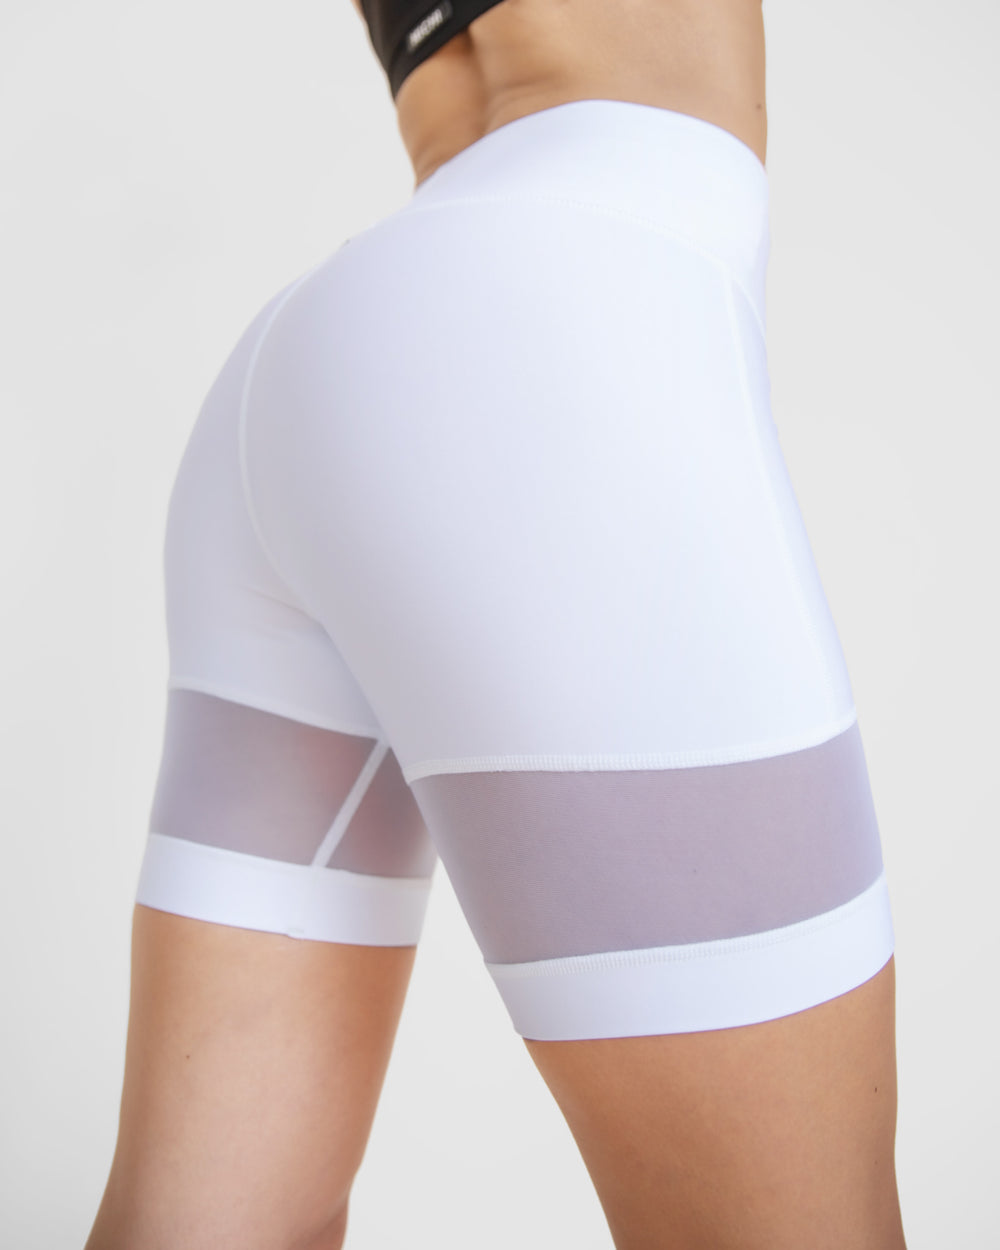 Psyloque Short - White